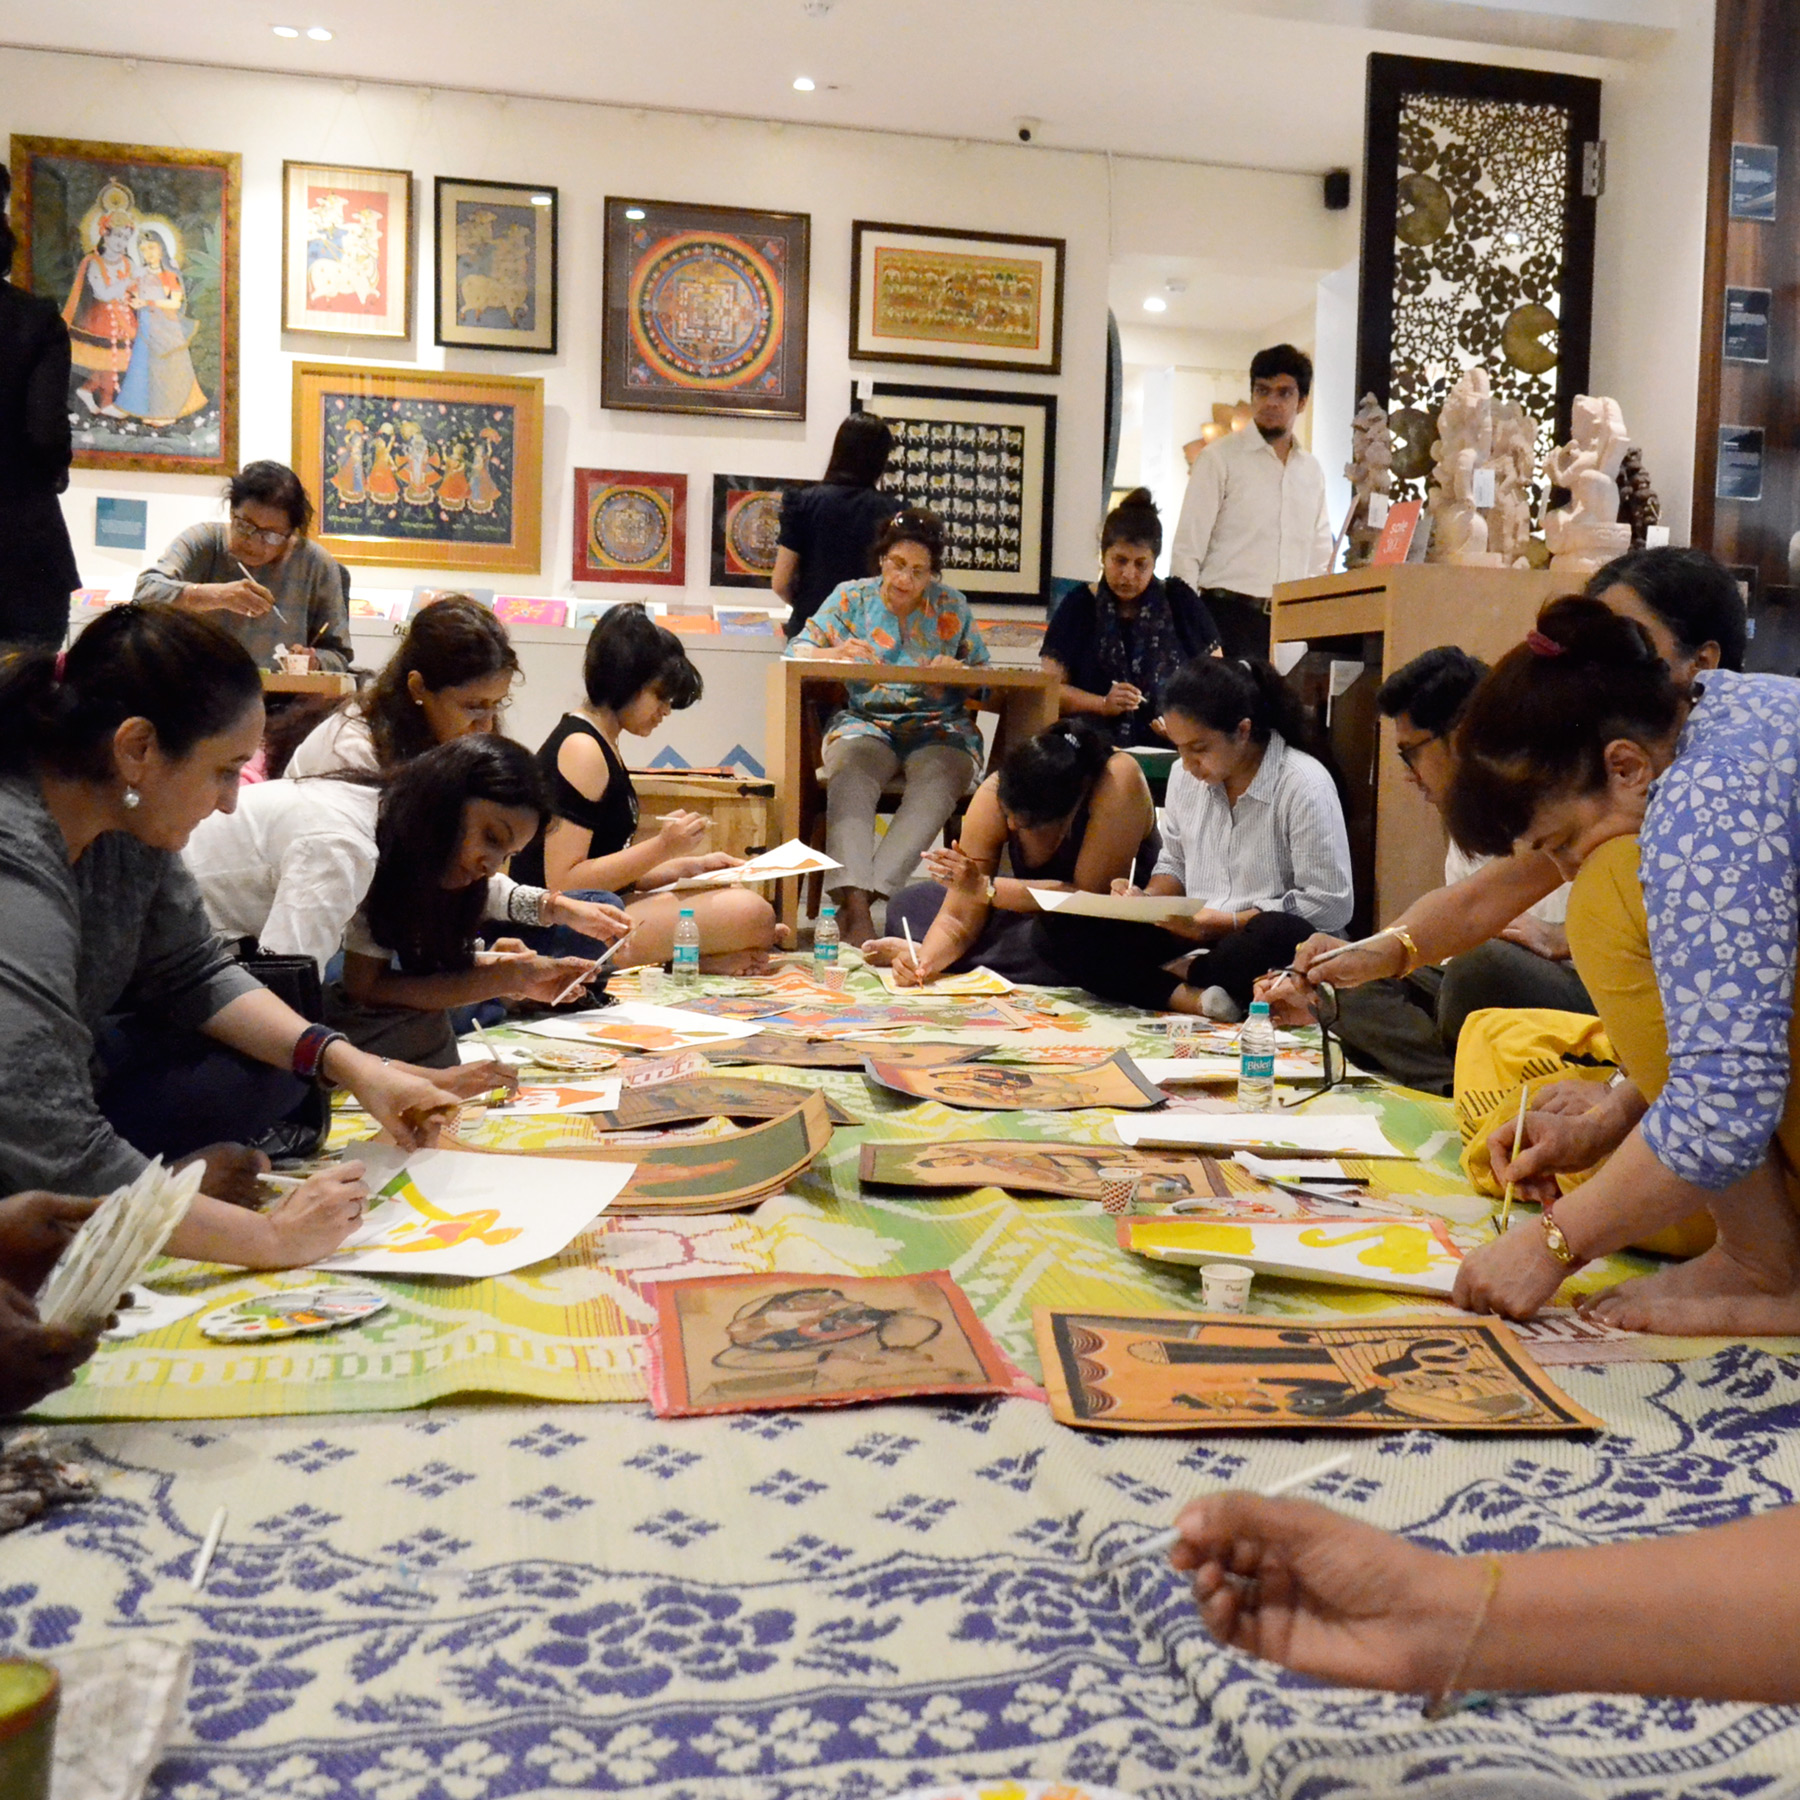 The participants working on their own Kalighat creation.